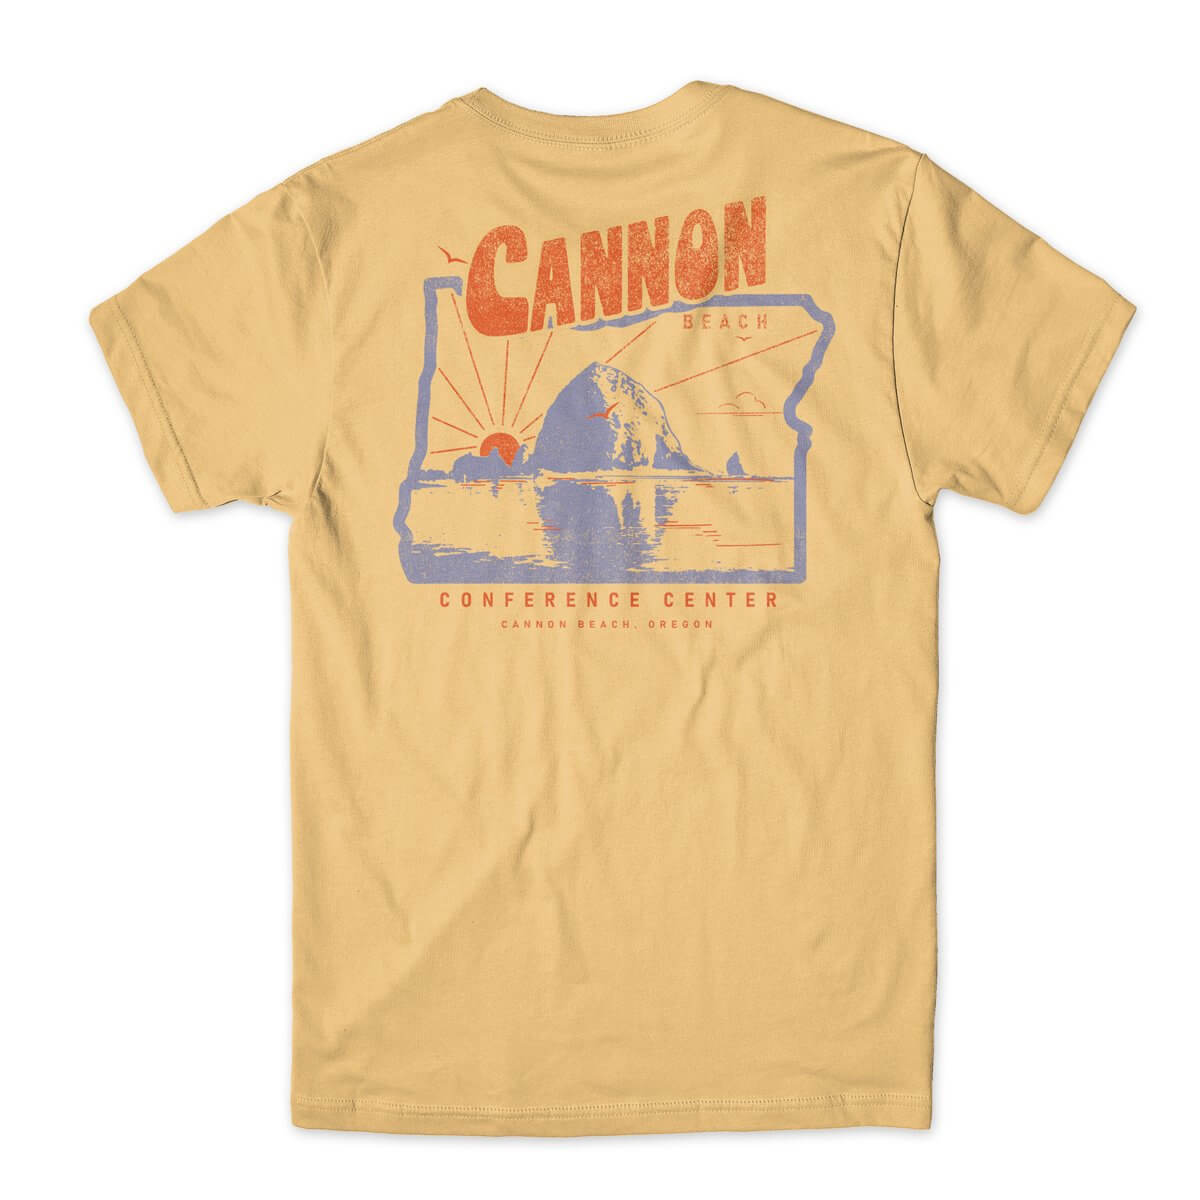 Cannon Beach Conference Center Beach Day t-shirt